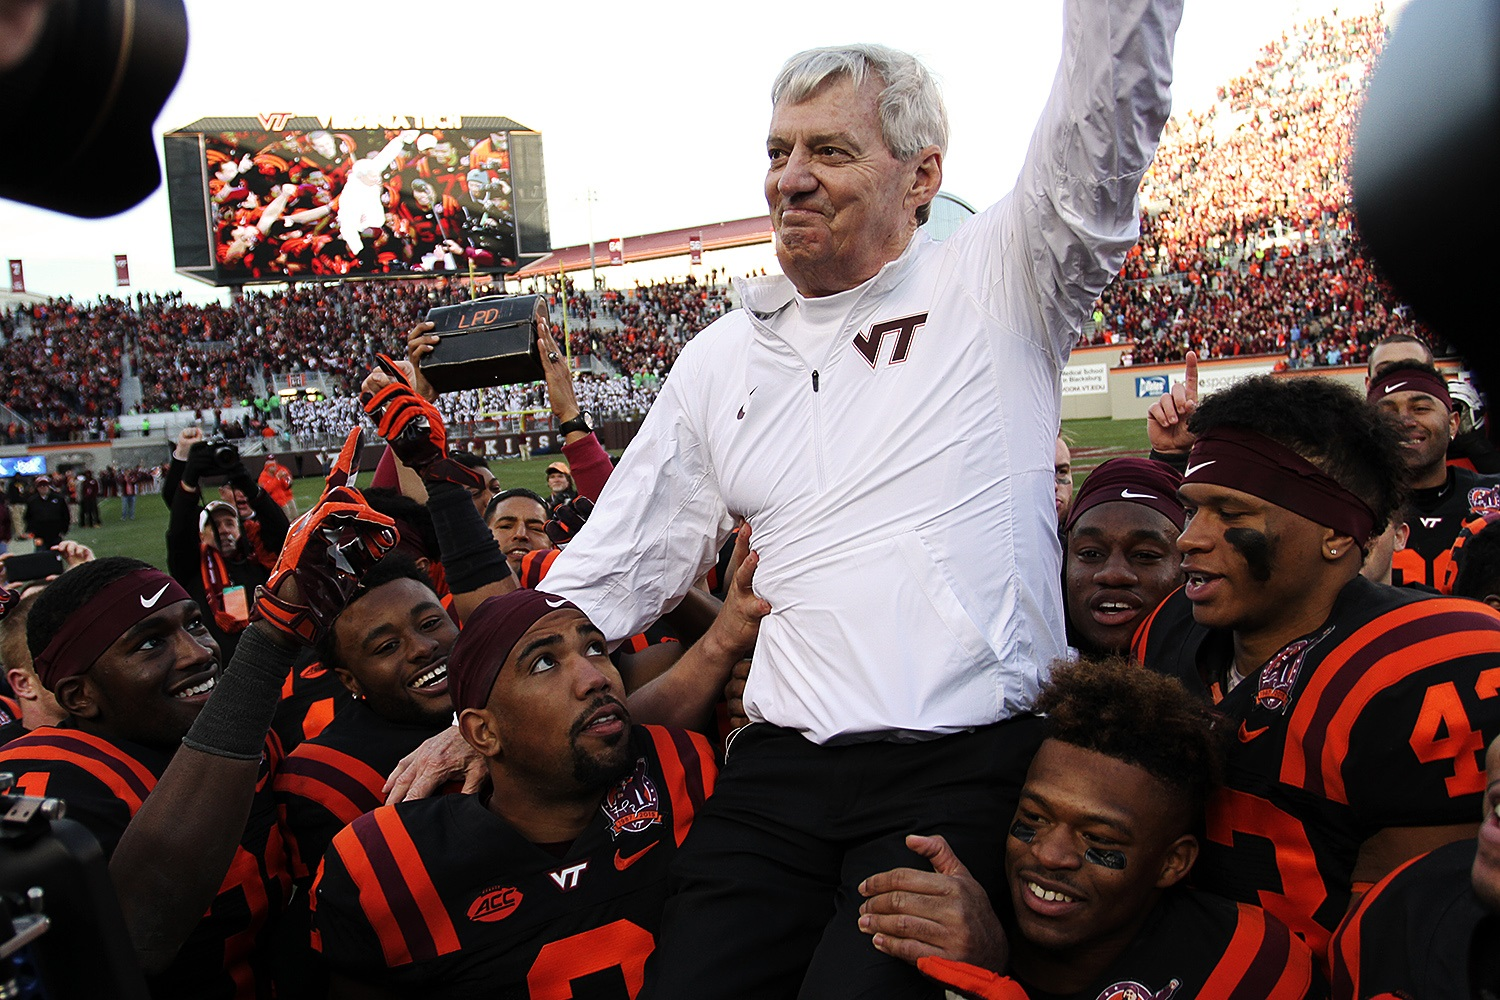 Frank Beamer College Football Hall of Fame Virginia Tech